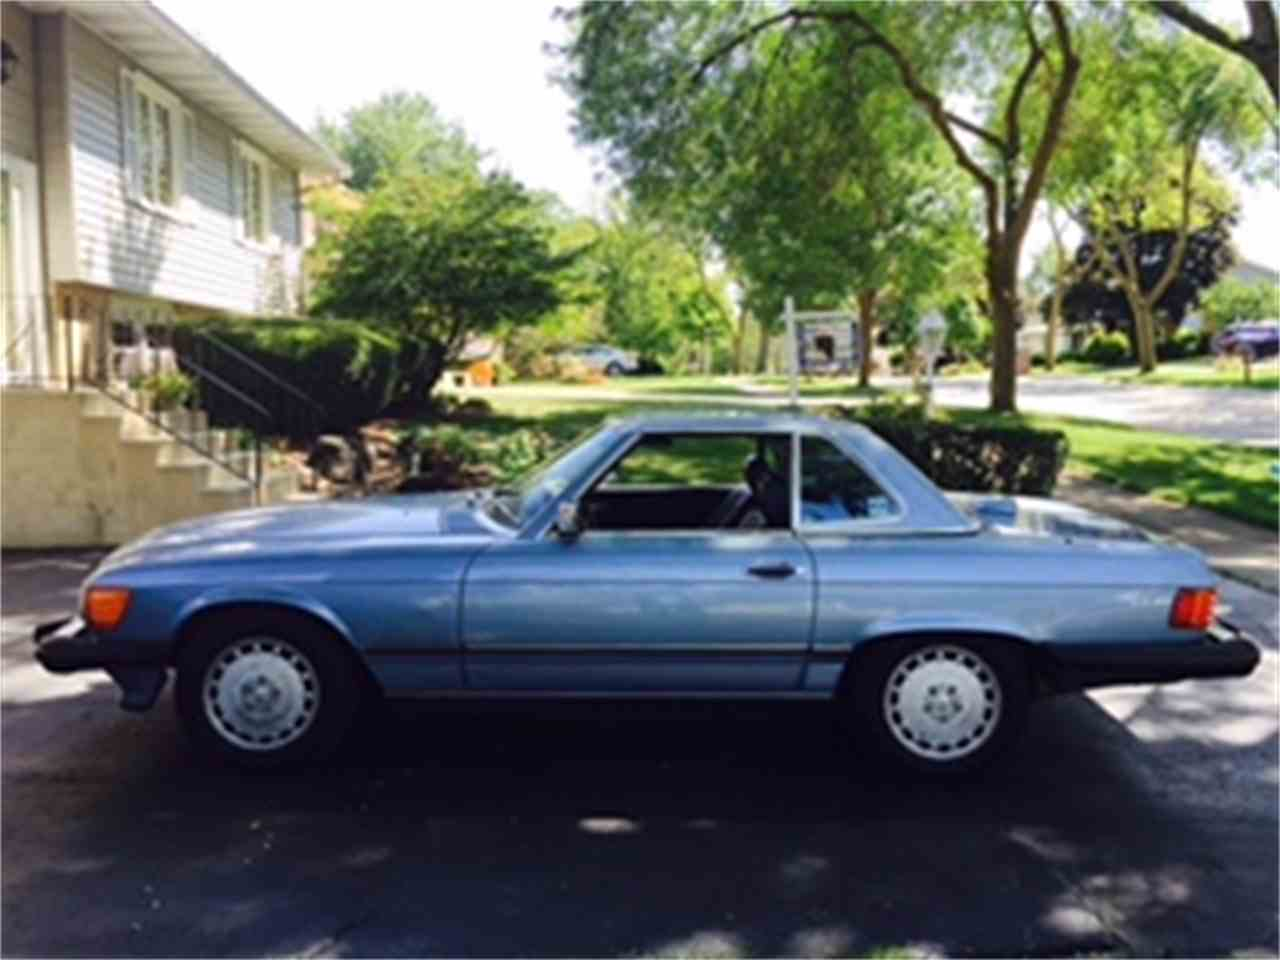 Large Picture of '86 Mercedes-Benz 560SL located in DOWNERS GROVE Illinois Offered by a Private Seller - JP35